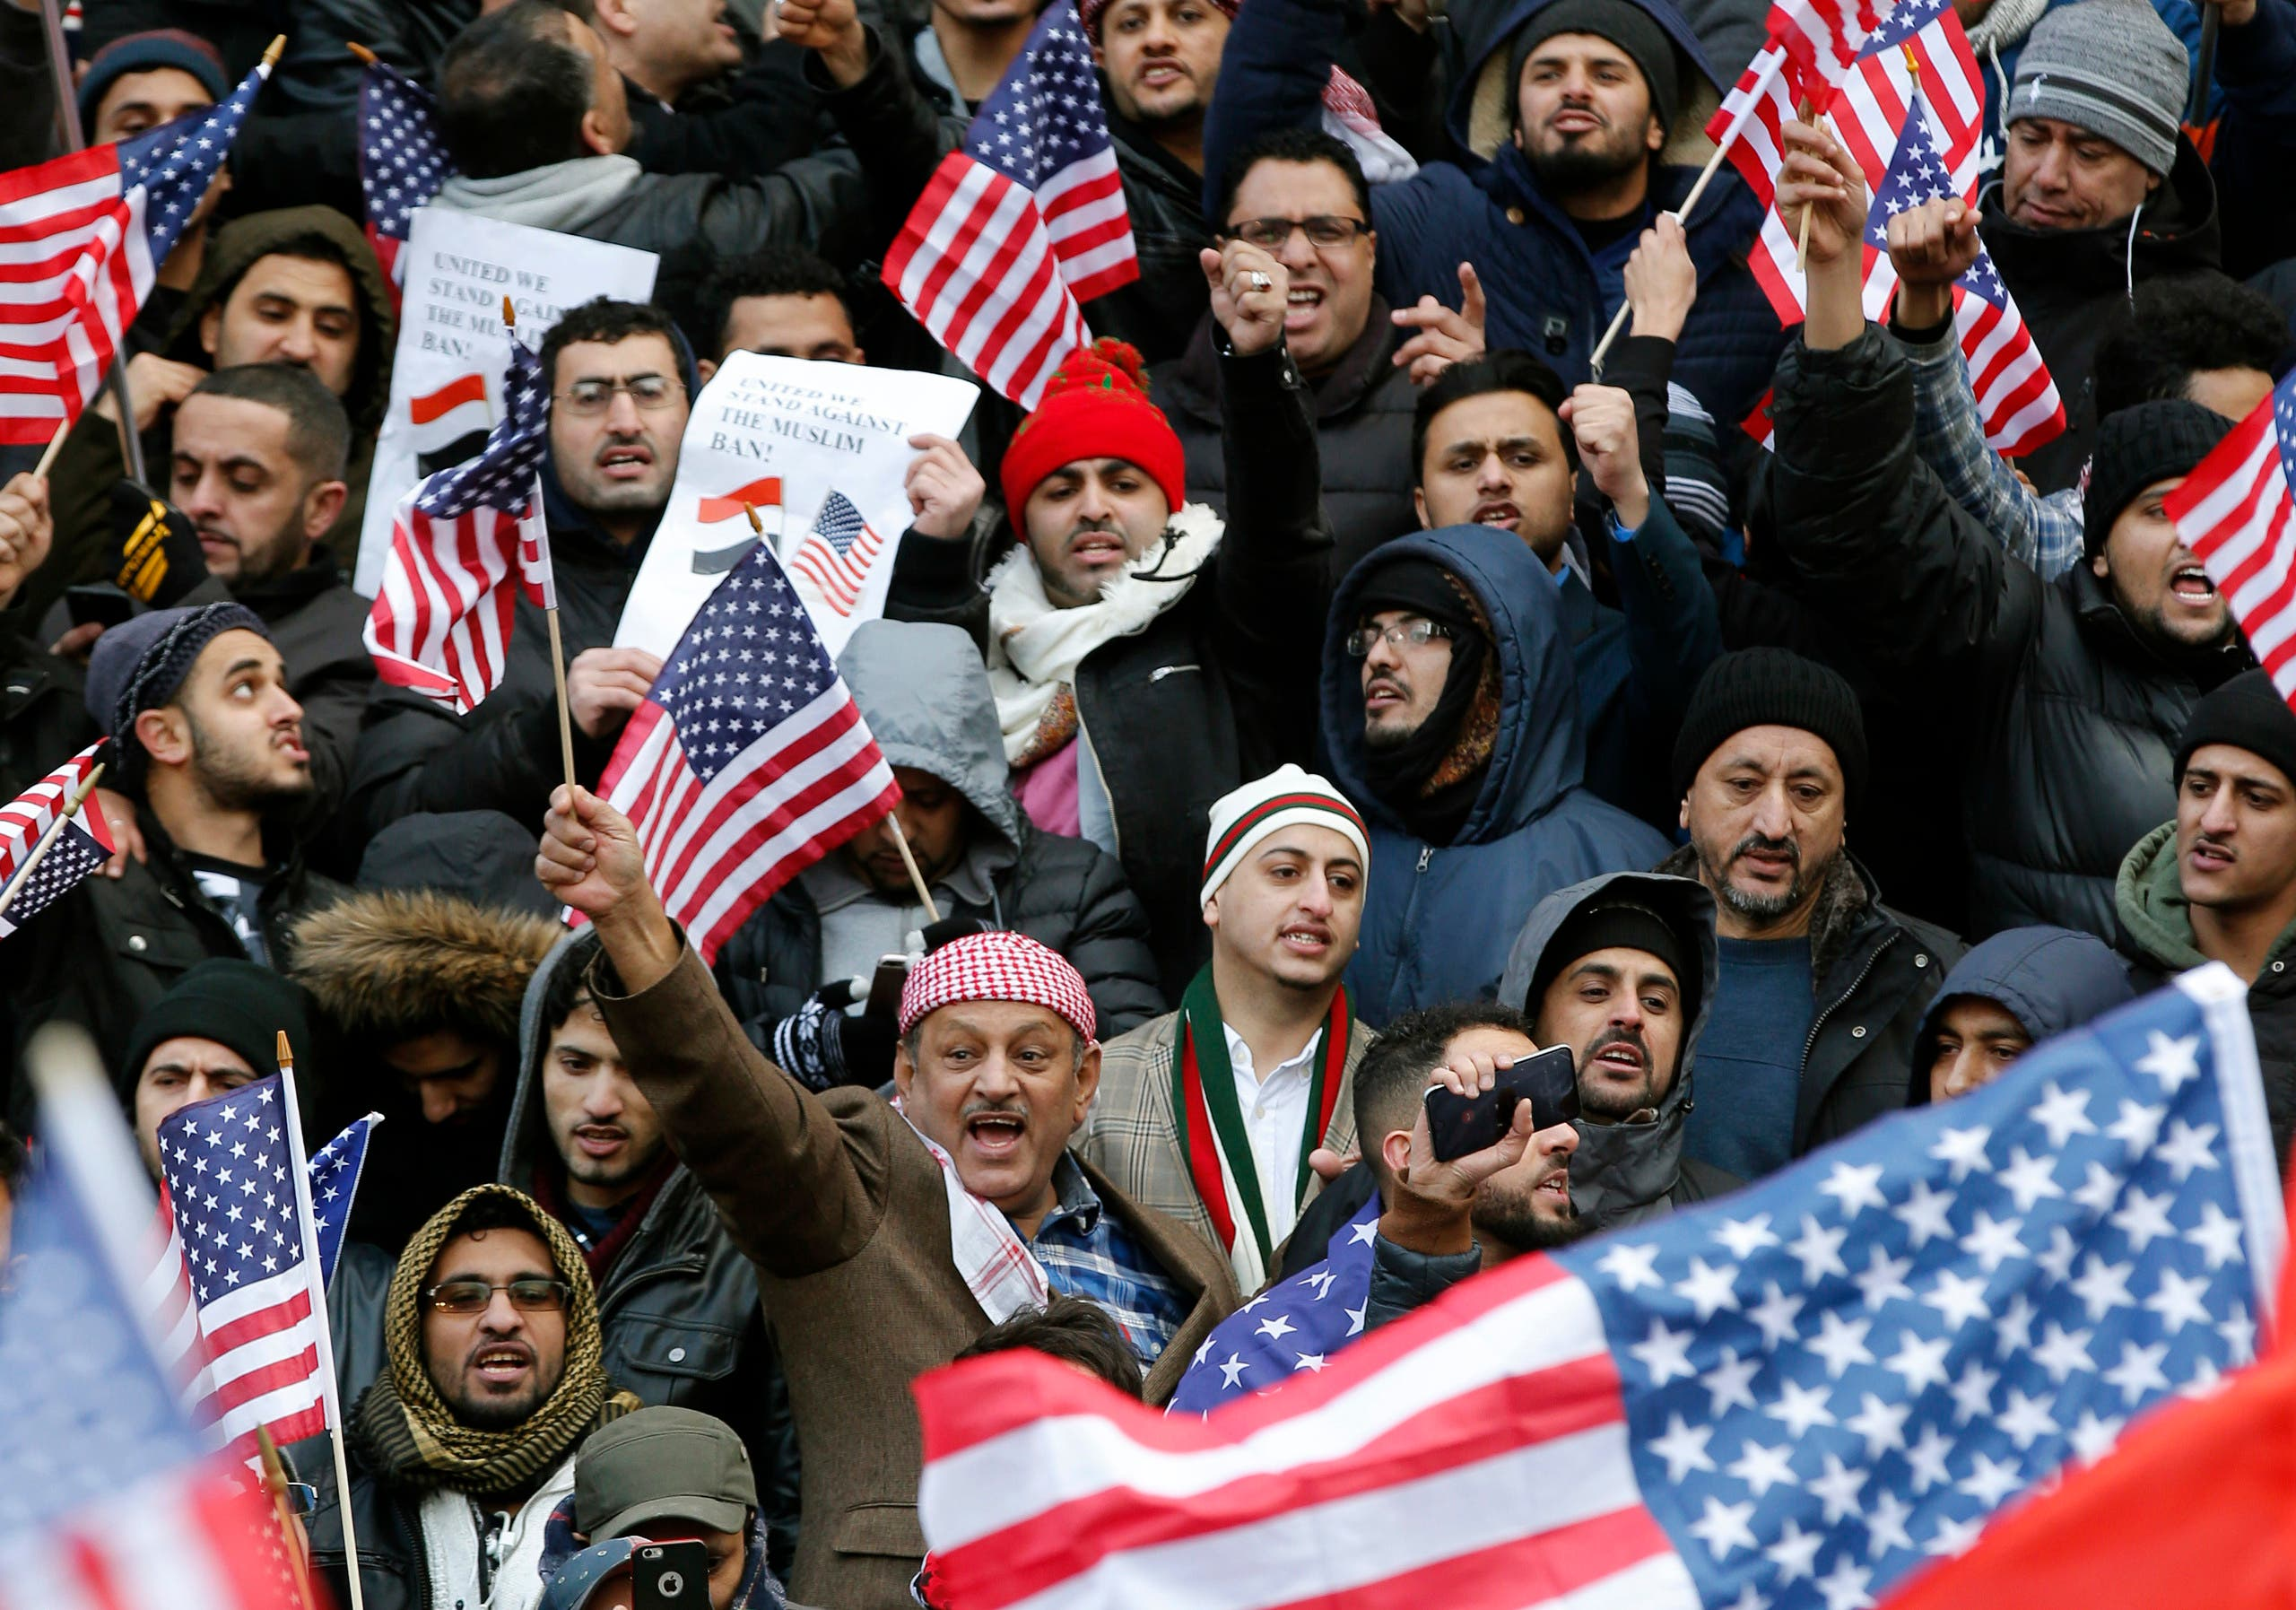 Muslims and Yemenis gather with their supporters on the steps of Brooklyn's Borough Hall, during a protest against President Donald Trump's temporary ban on Muslims from certain countries entering the United States, Thursday, Feb. 2, 2017, in the Brooklyn borough of New York. (AP)